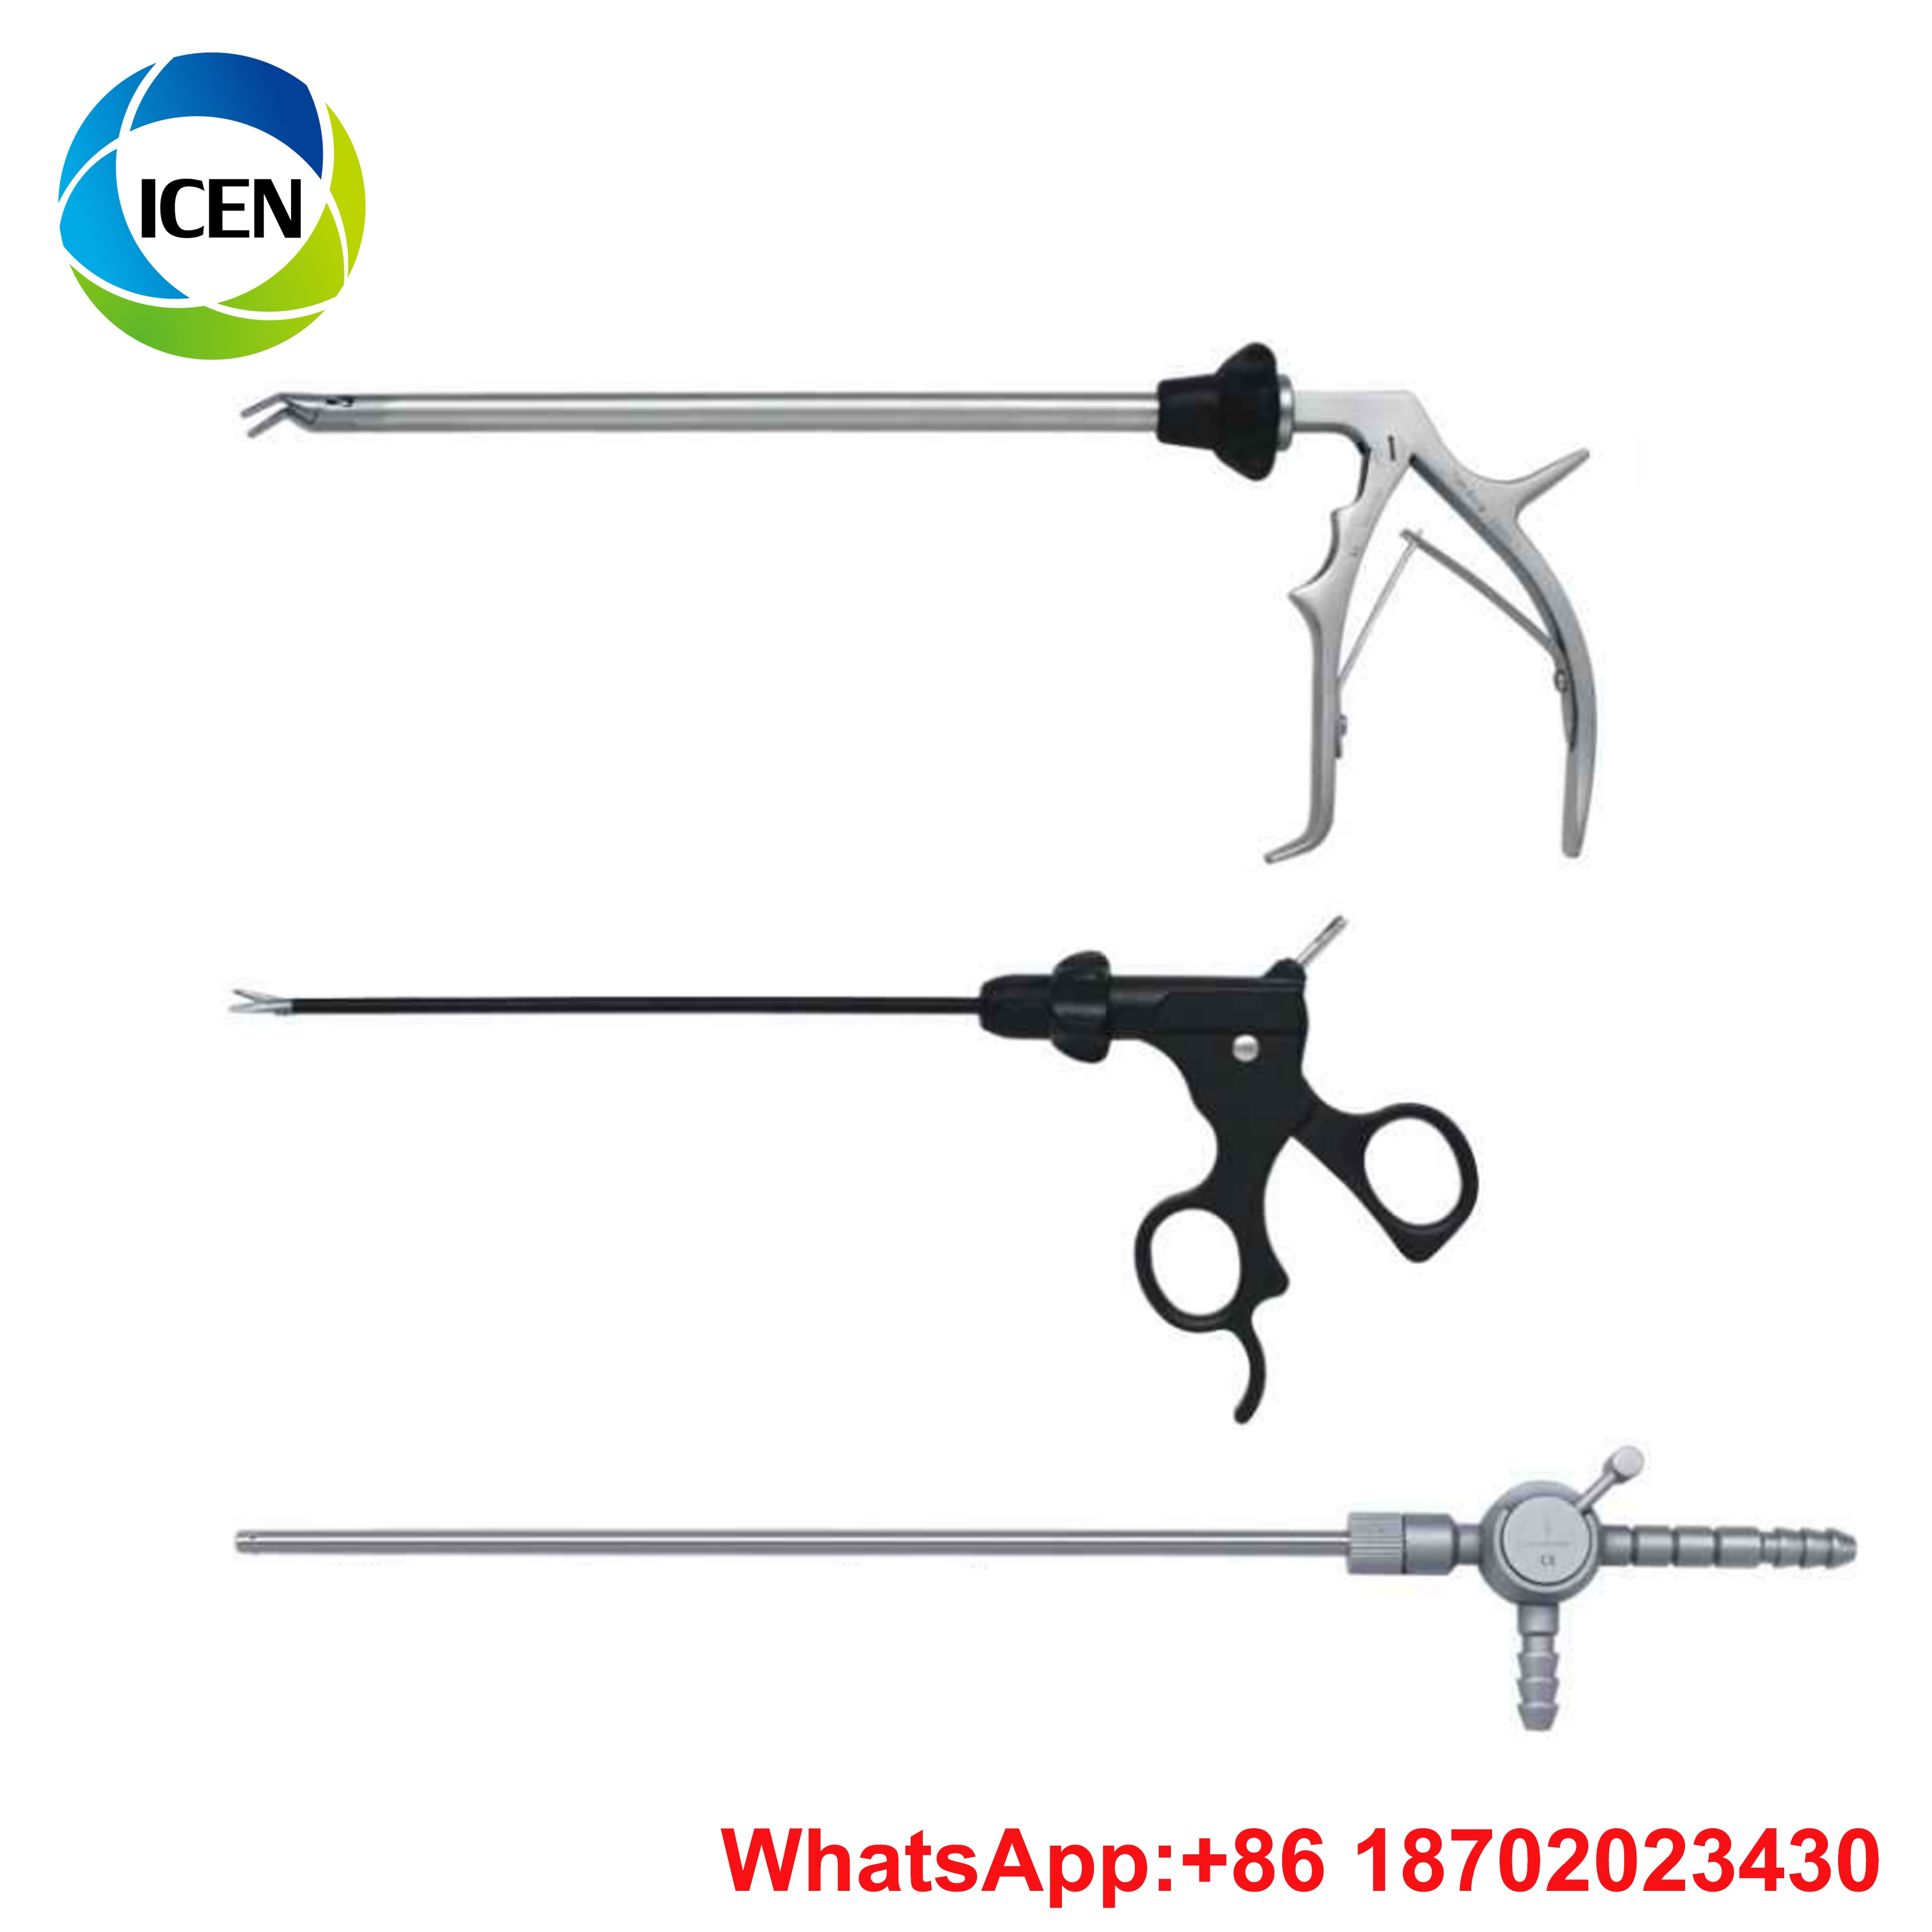 Surgical Laparoscopy instrument and small incision instrument